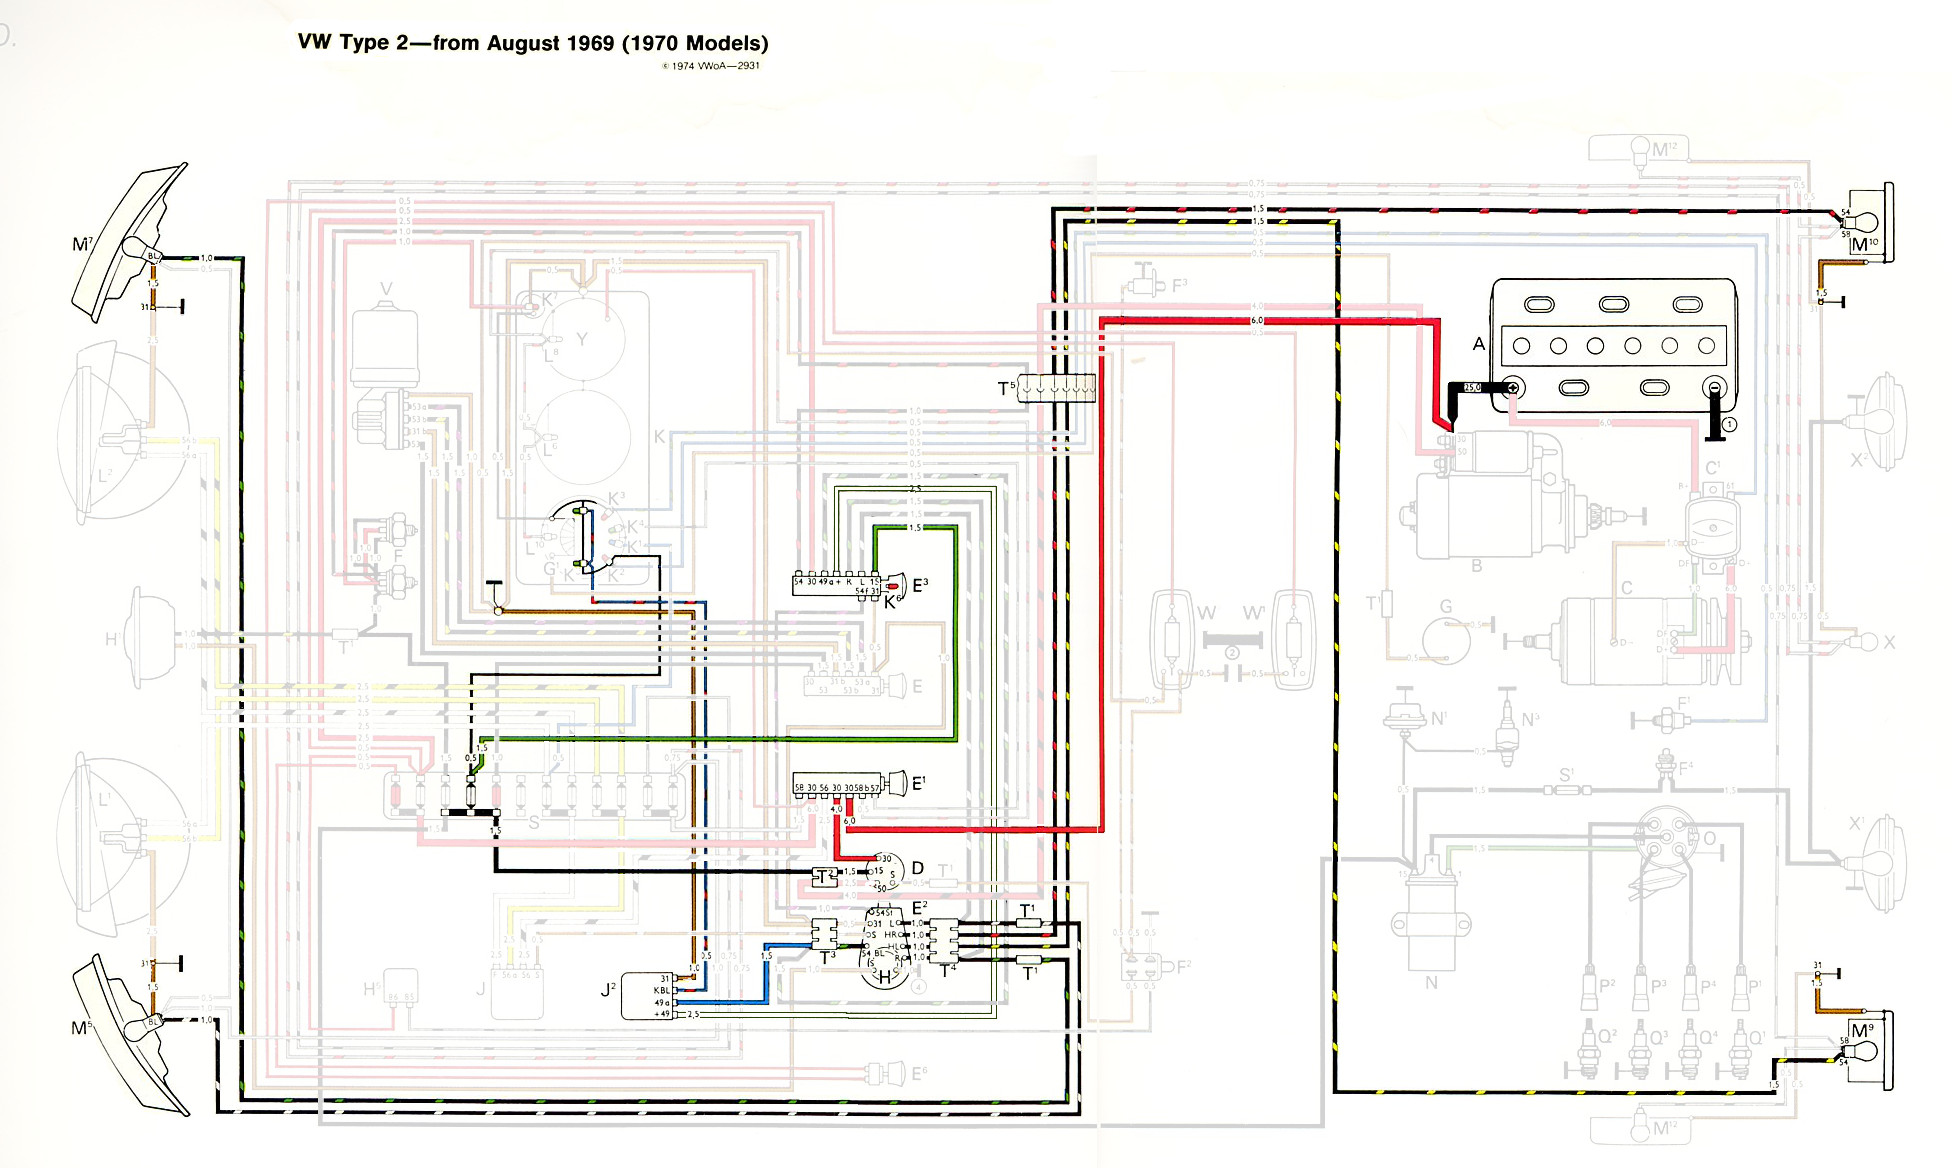 1970bus_signals 1970 vw bus wiring diagram 1970 wiring diagrams collection  at fashall.co